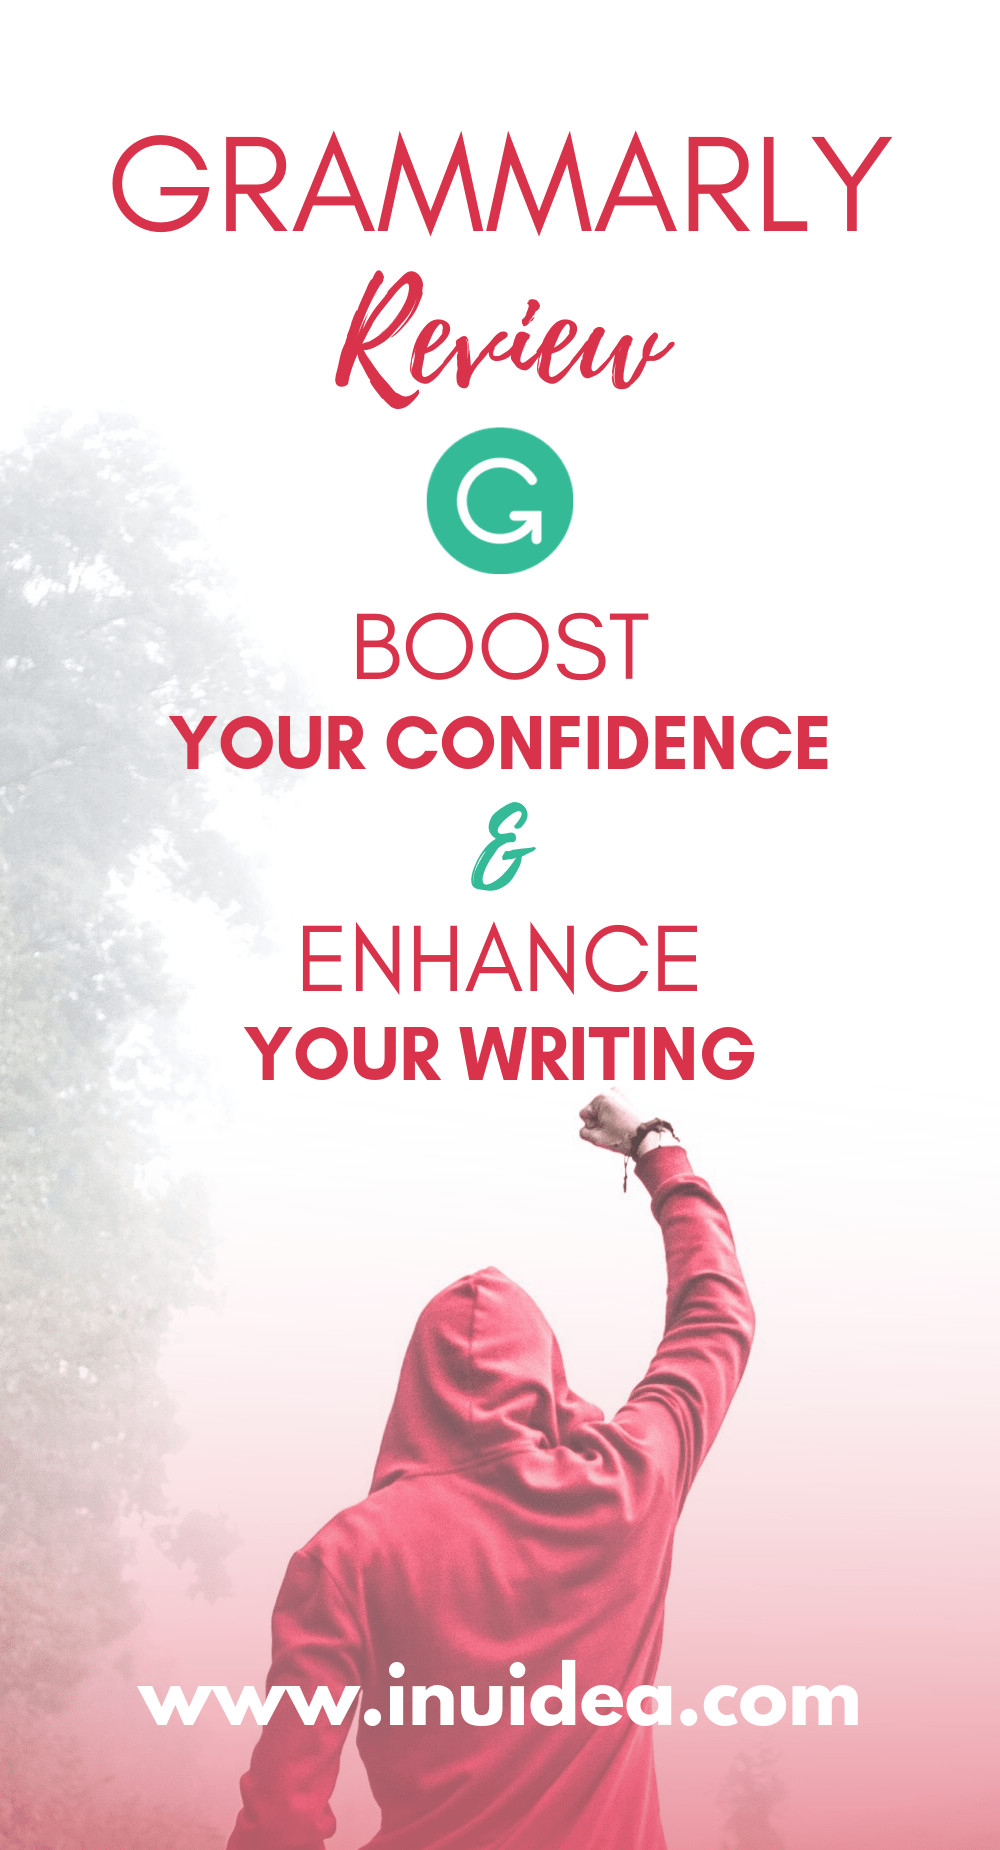 Vip Coupon Code Grammarly 2020